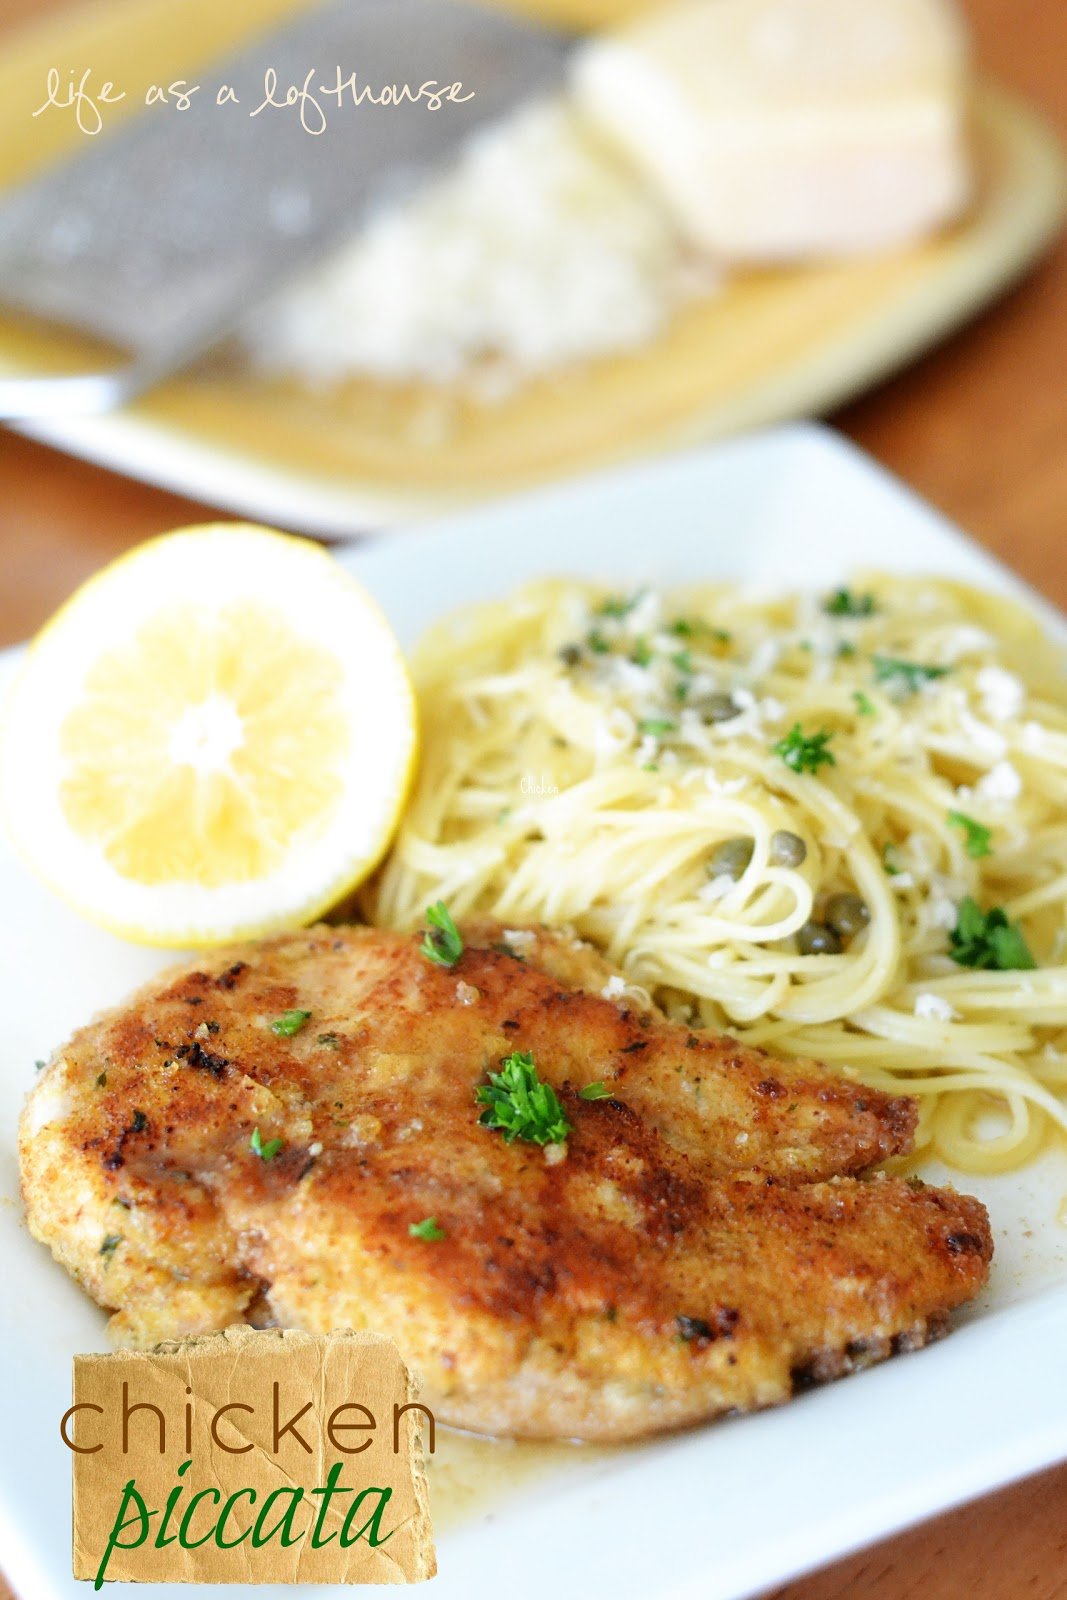 Chicken Piccata Is One Of My Favorite Chicken Dishes It S Super Easy To Throw Together Yet Really Impressive I Love How Fancy It Looks Even Though It